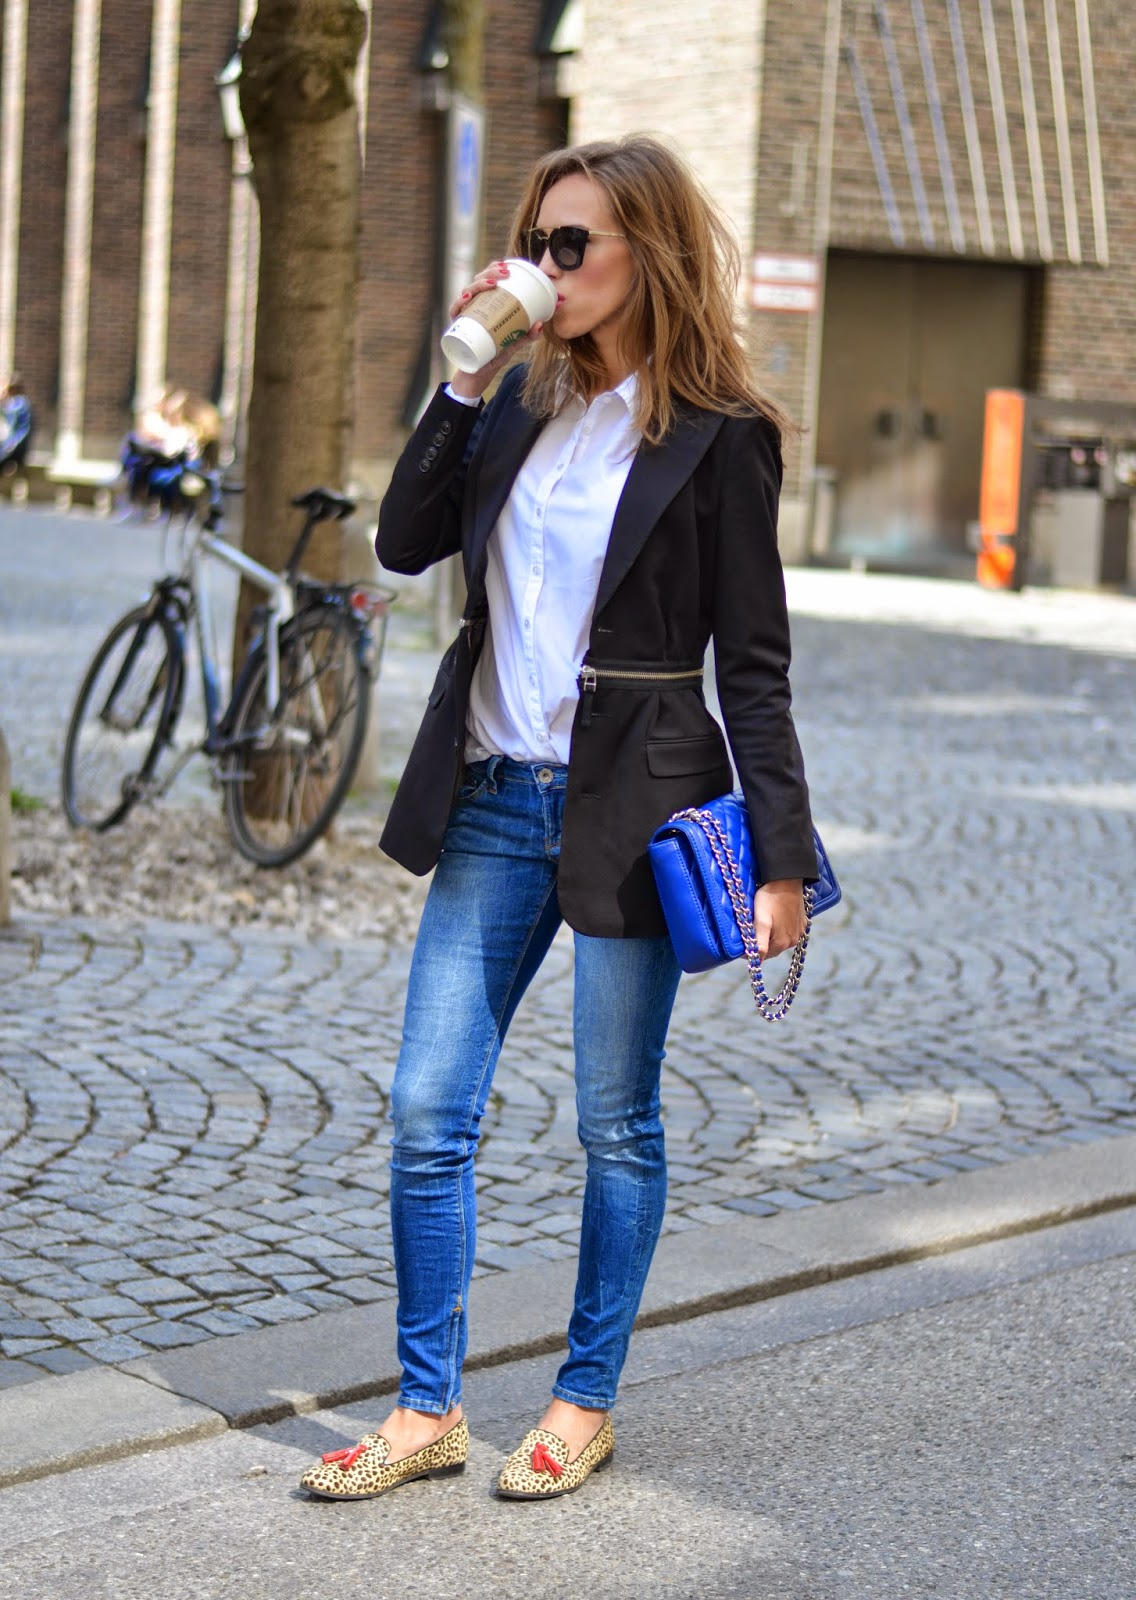 kristjaana mere business casual spring outfit